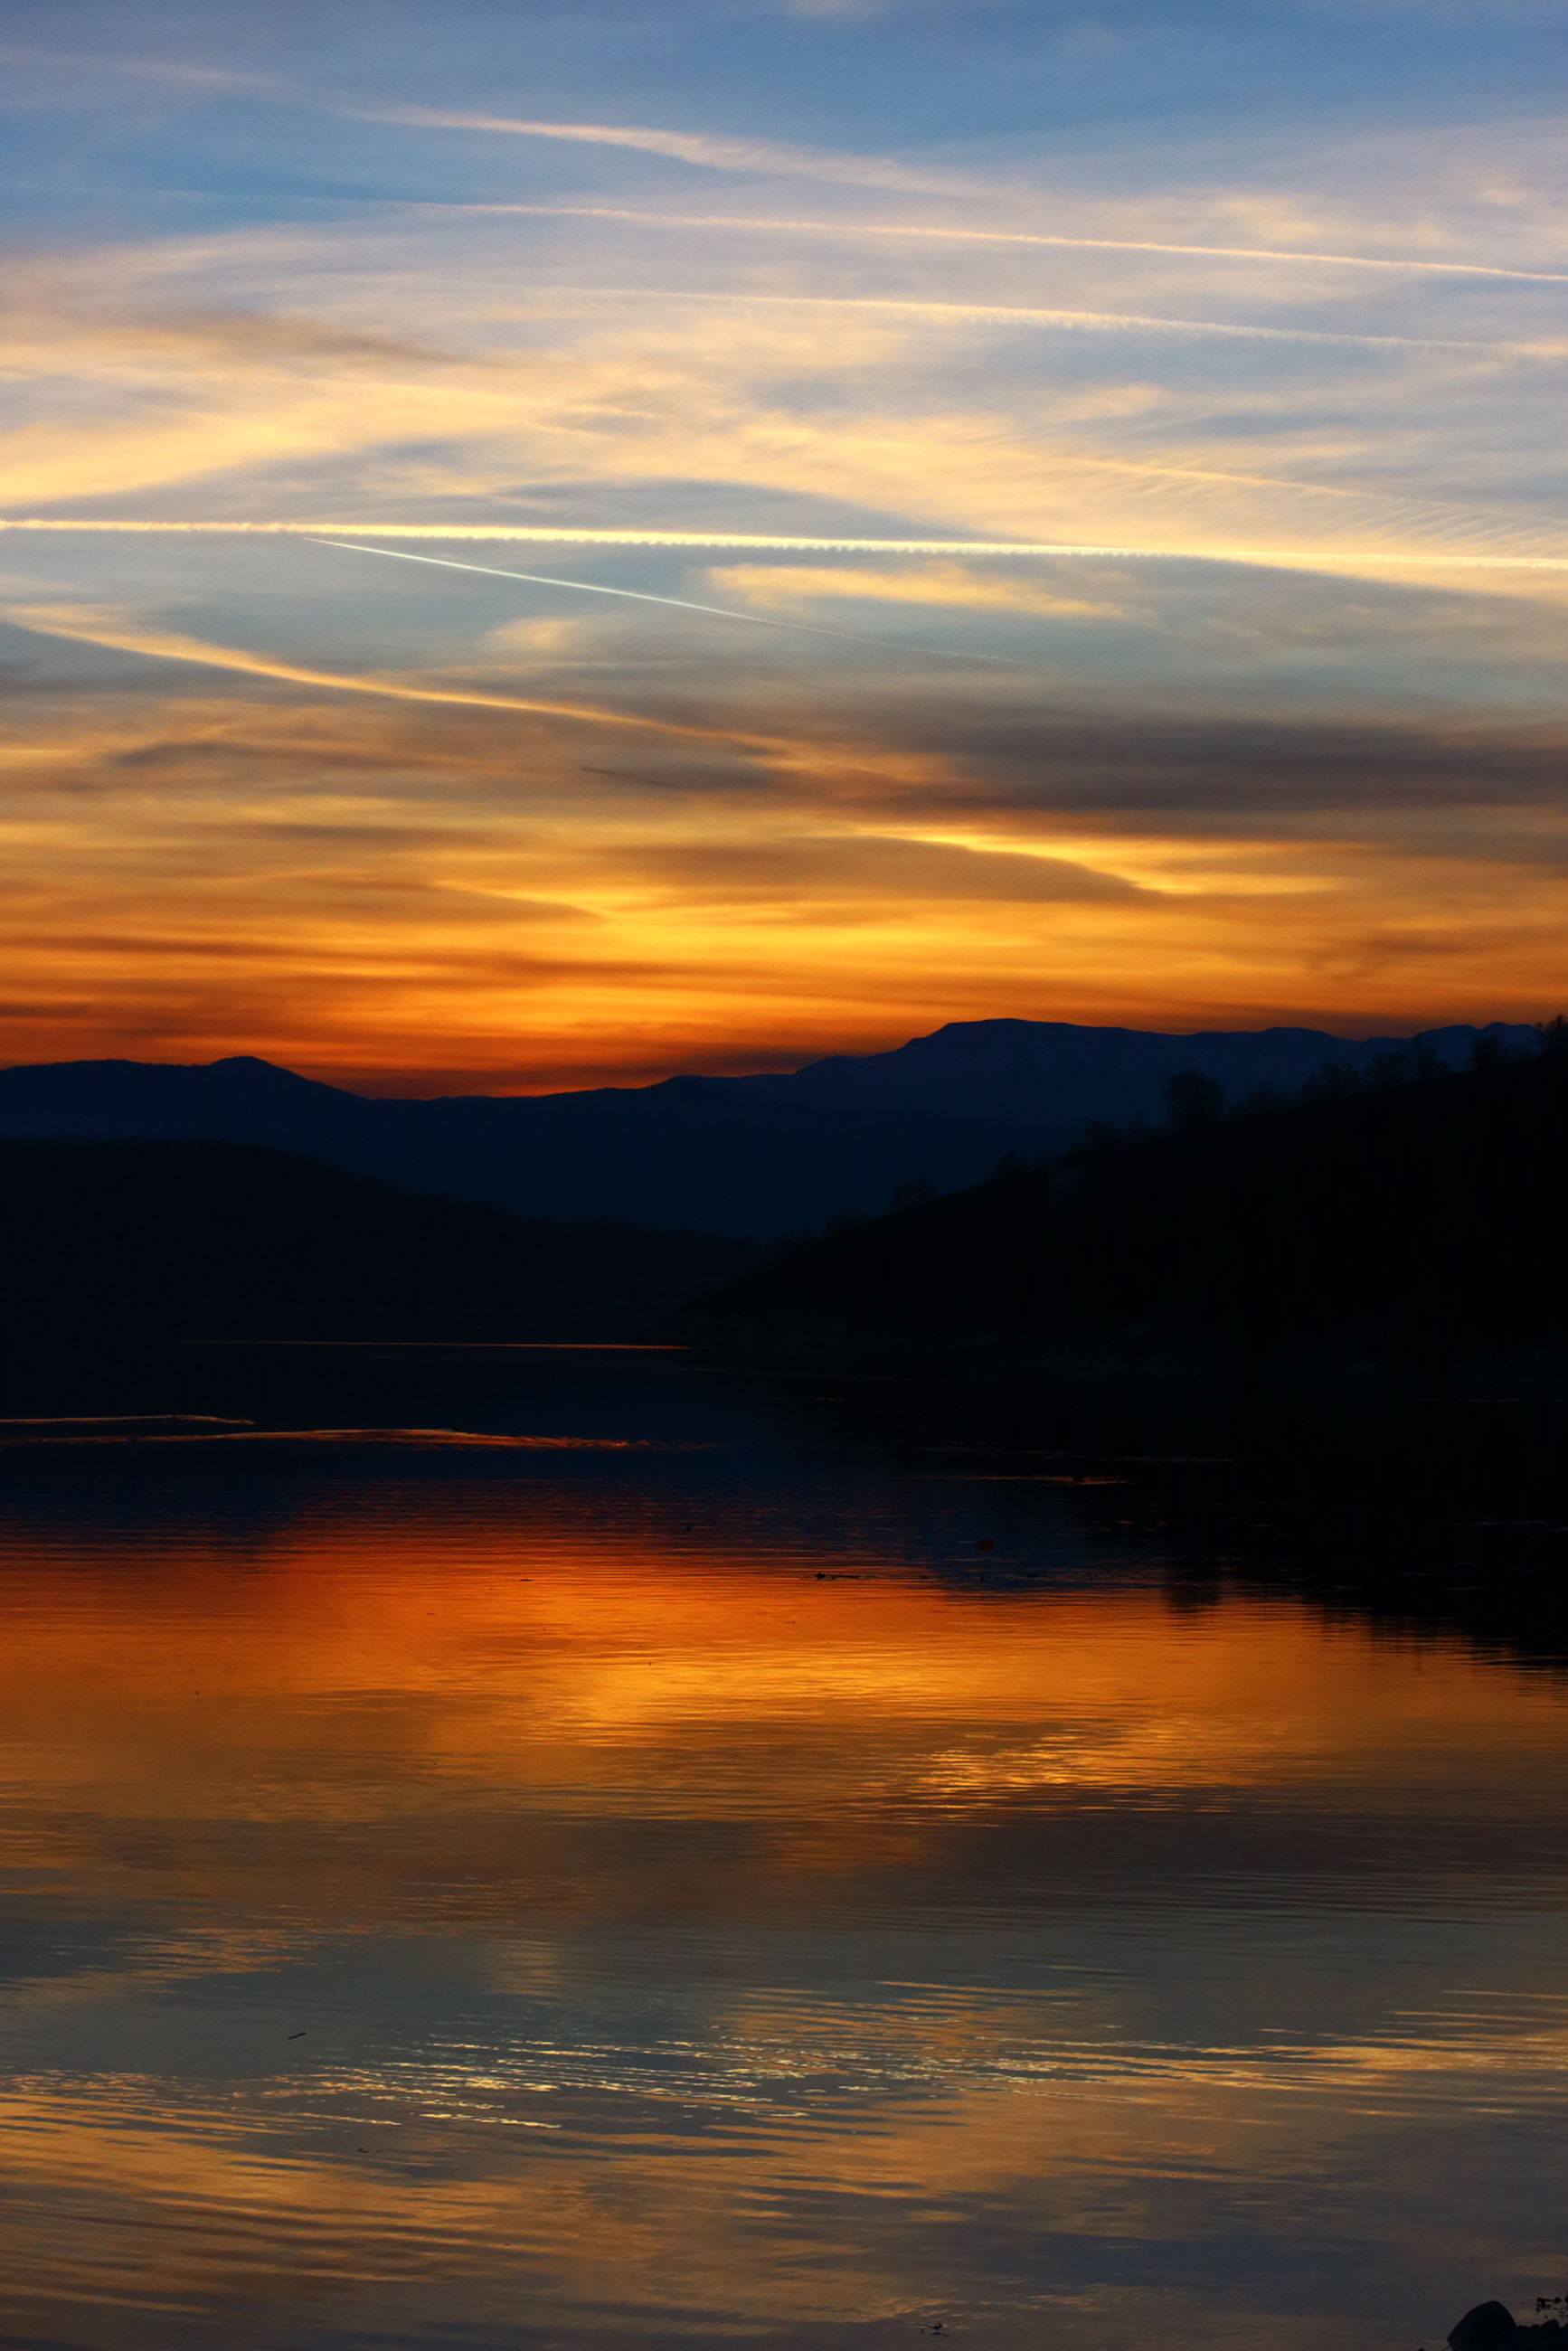 sunset, scenics, water, tranquil scene, tranquility, reflection, beauty in nature, orange color, sky, lake, idyllic, silhouette, mountain, nature, waterfront, cloud - sky, majestic, cloud, dramatic sky, calm